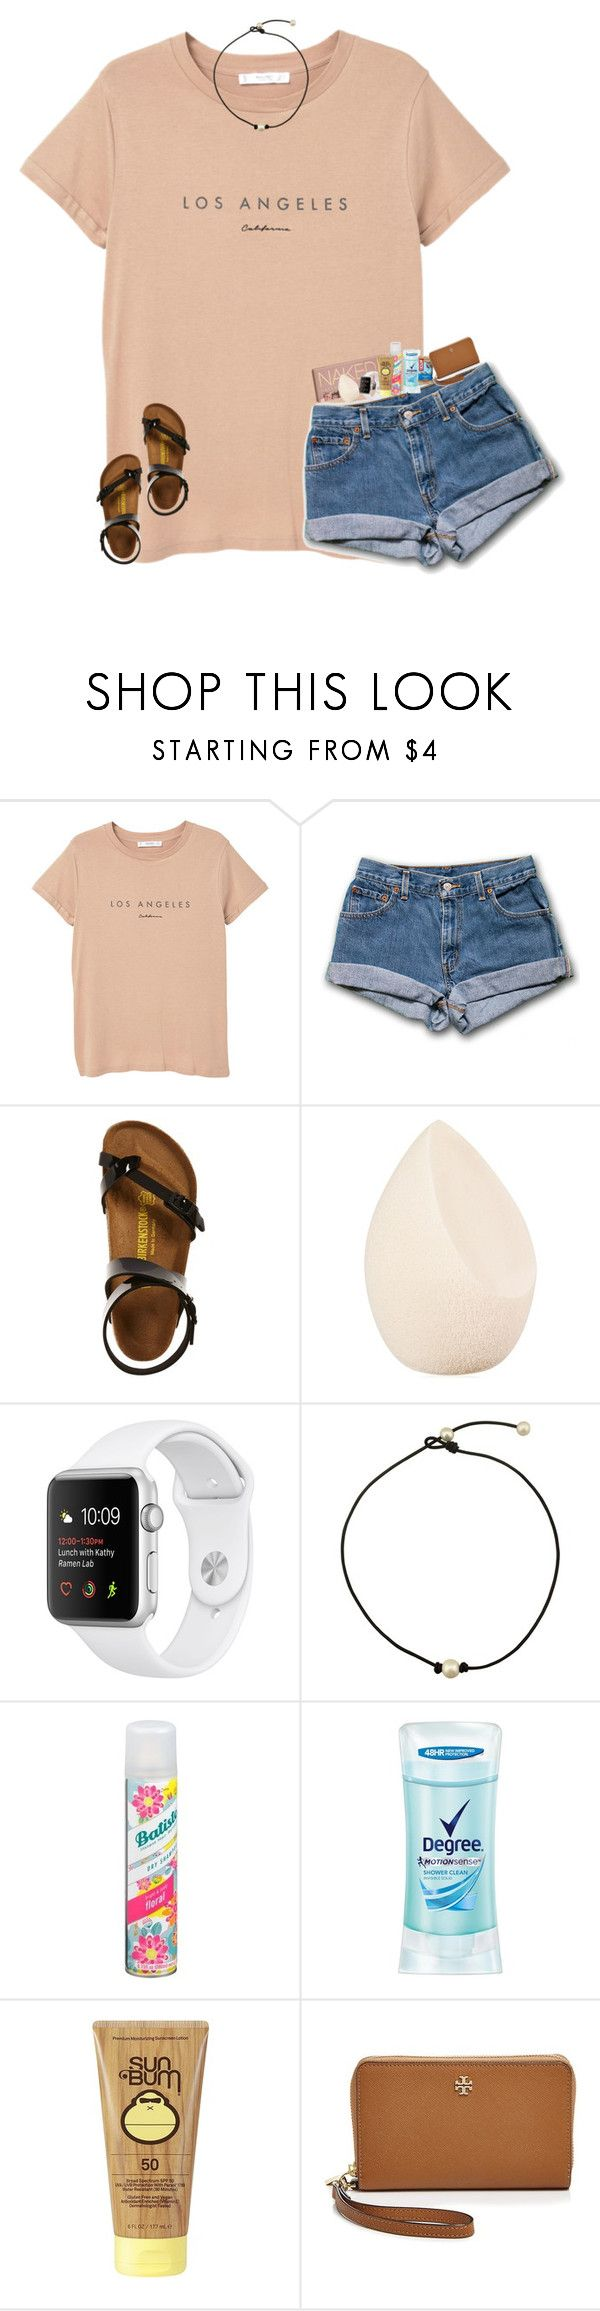 """""""currently listening to throwback songs"""" by sydneenxcole ❤ liked on Polyvore featuring MANGO, Birkenstock, Urban Decay, Christian Dior, Batiste, Degree, Sun Bum and Tory Burch"""